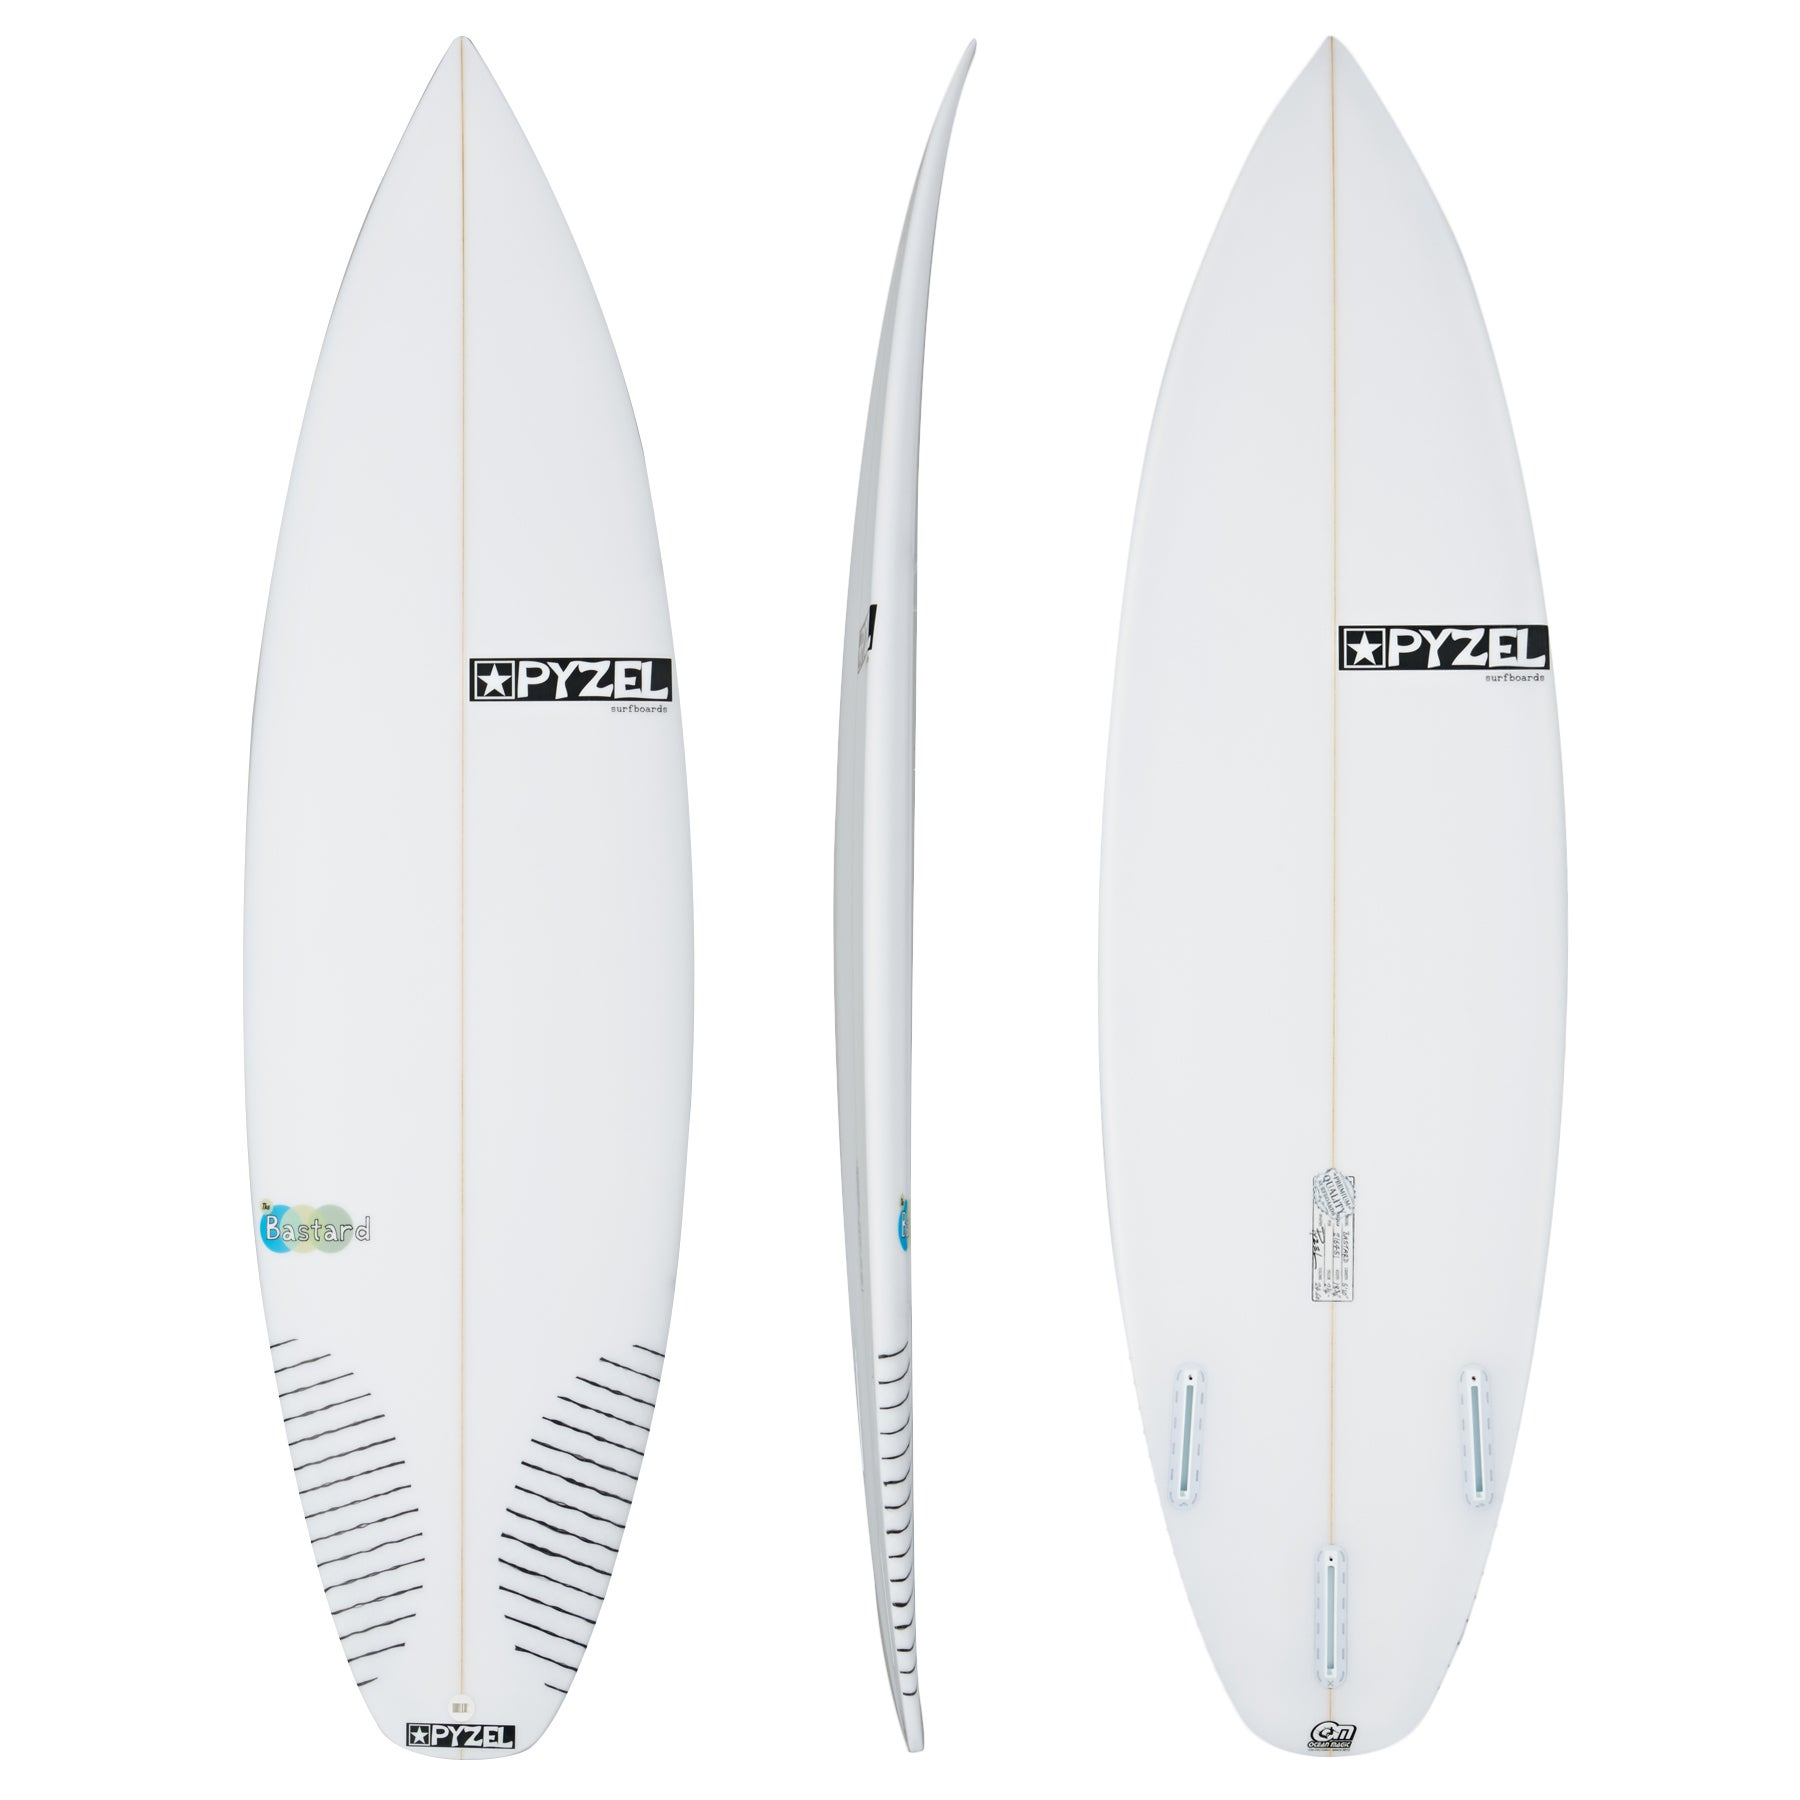 Pyzel The B*stard Futures Thruster Surfboard - White